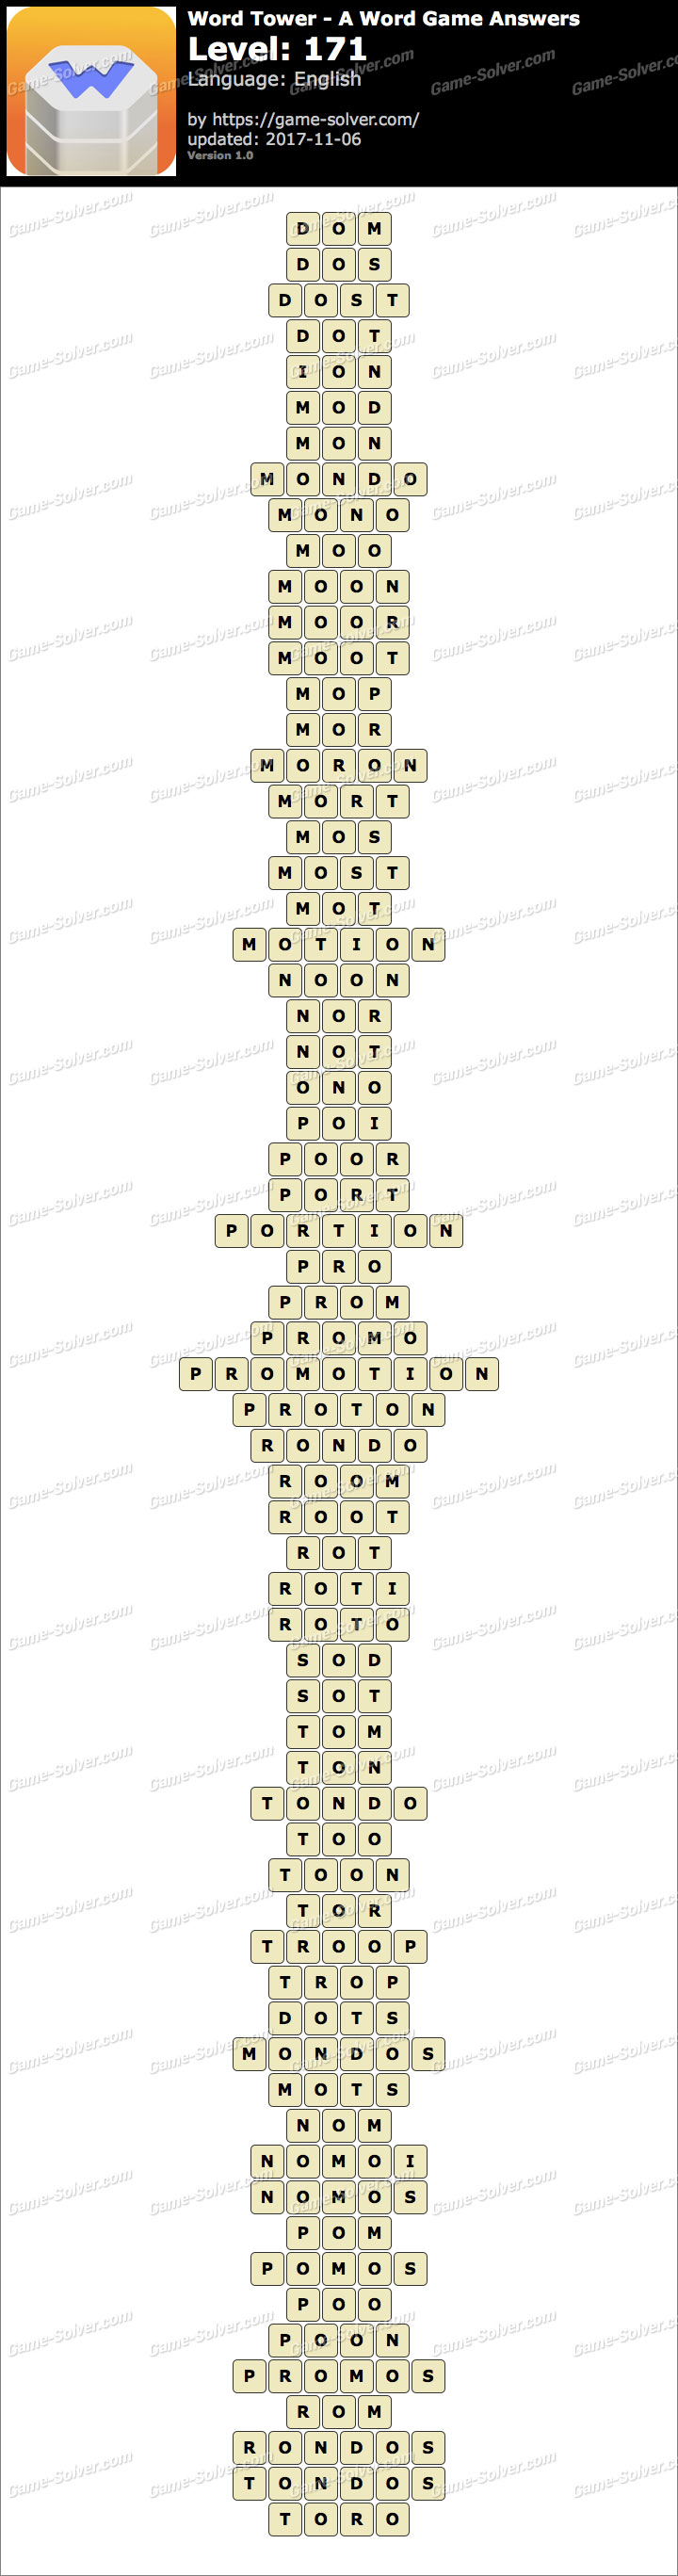 Word Tower Level 171 Answers